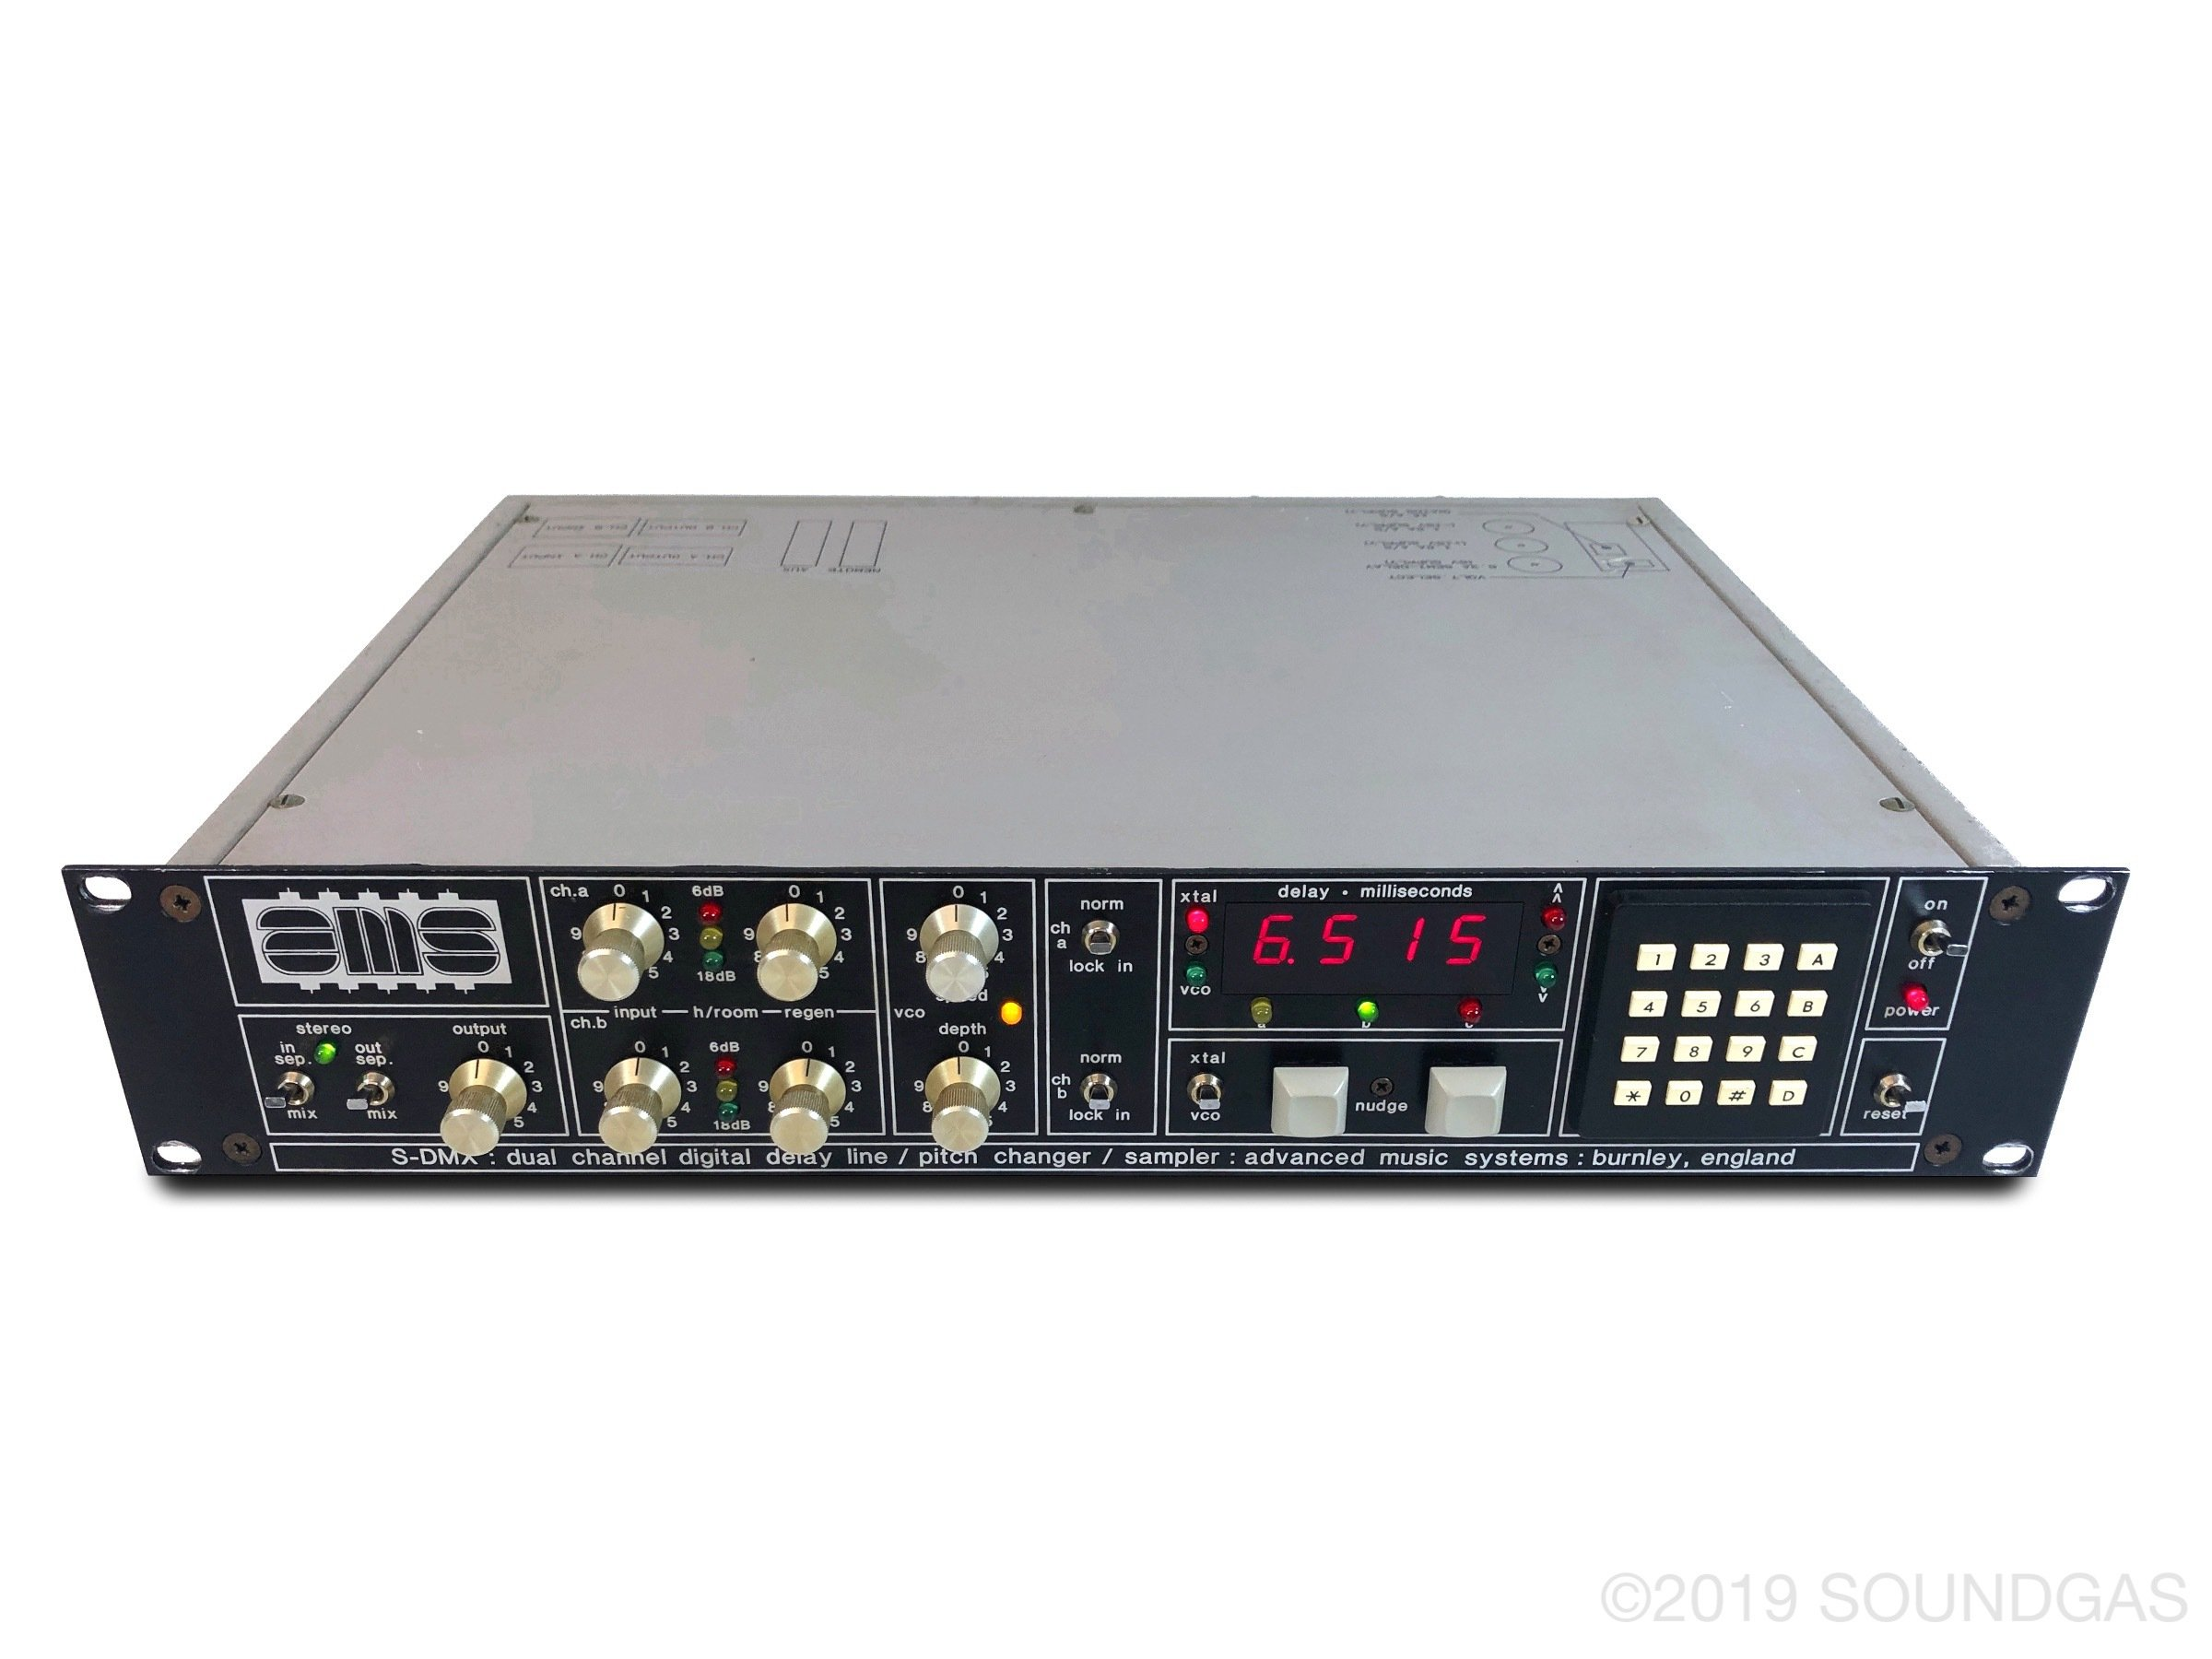 AMS-S-DMX-Digital-Delay-Line-Pitch-Changer-Sampler-Cover-2